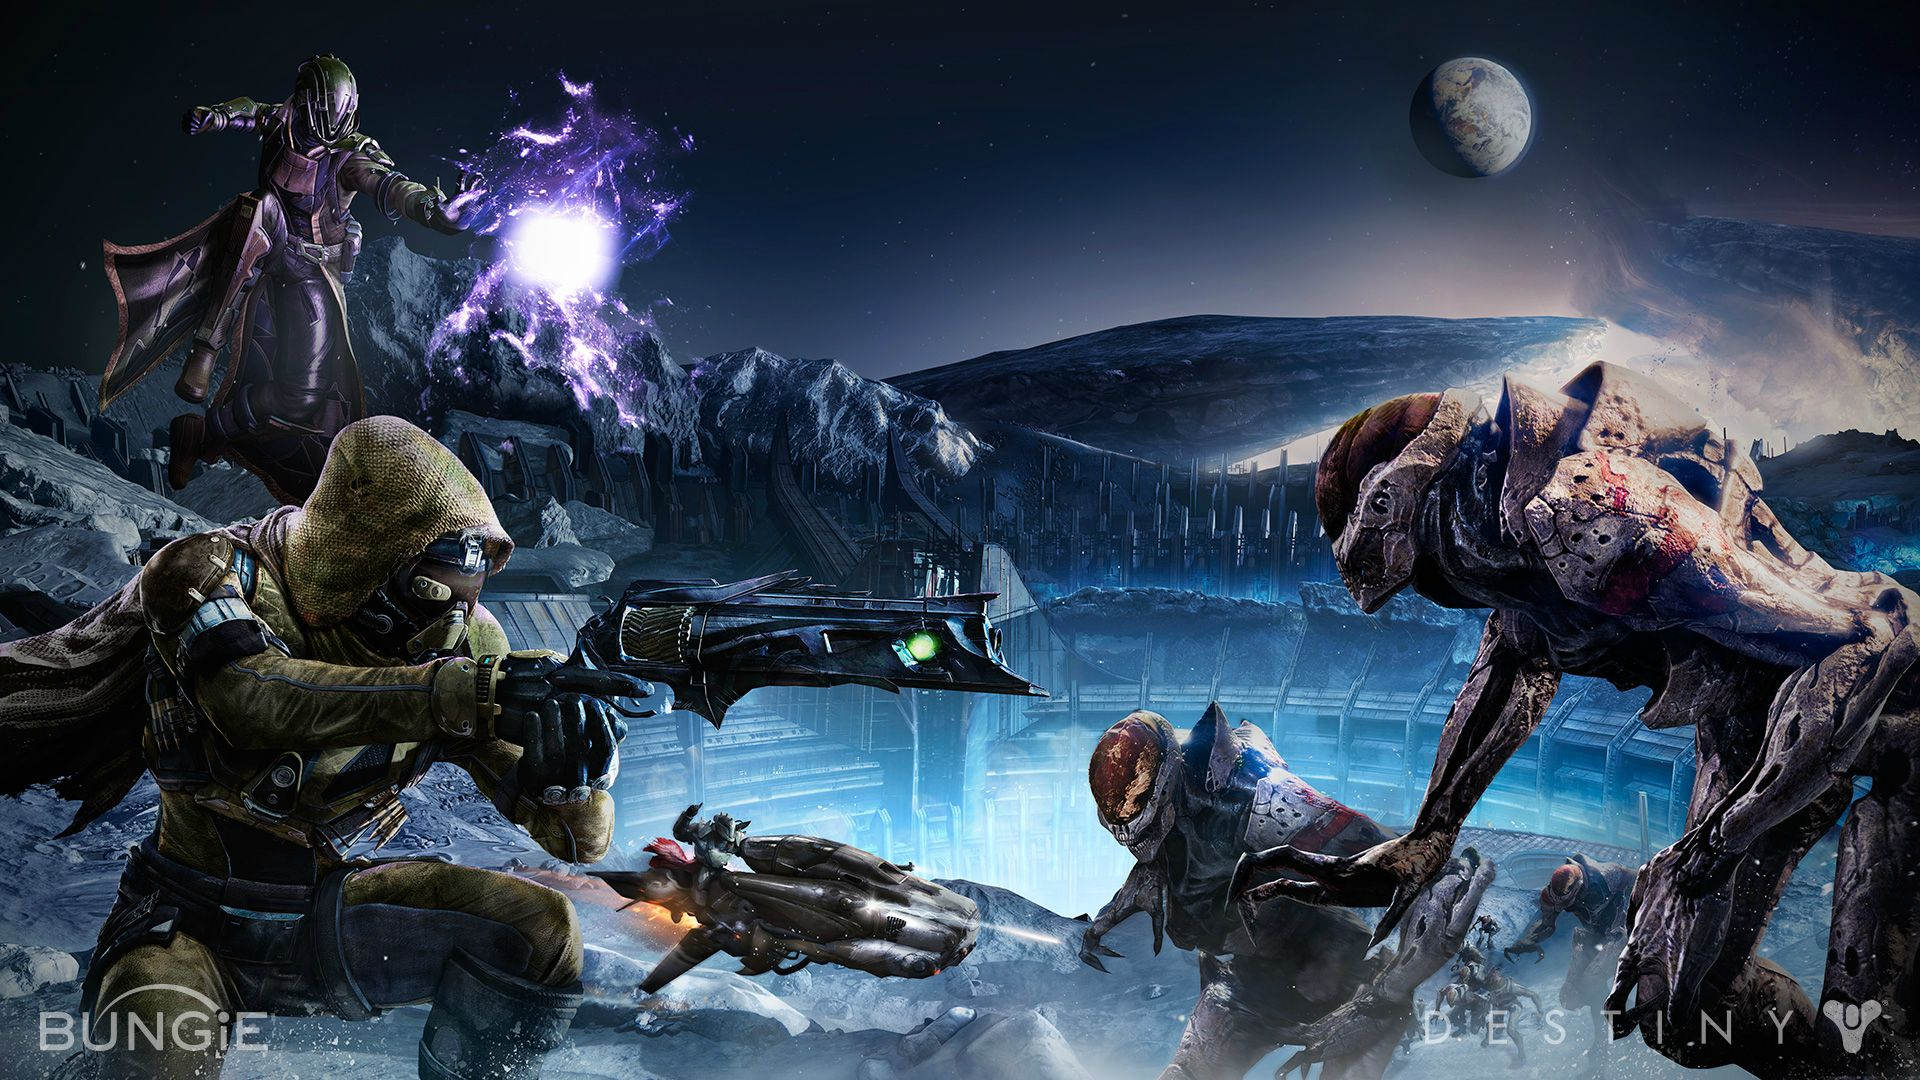 Games Movies Music Anime Destiny   4 New 1080p Wallpapers 1920x1080